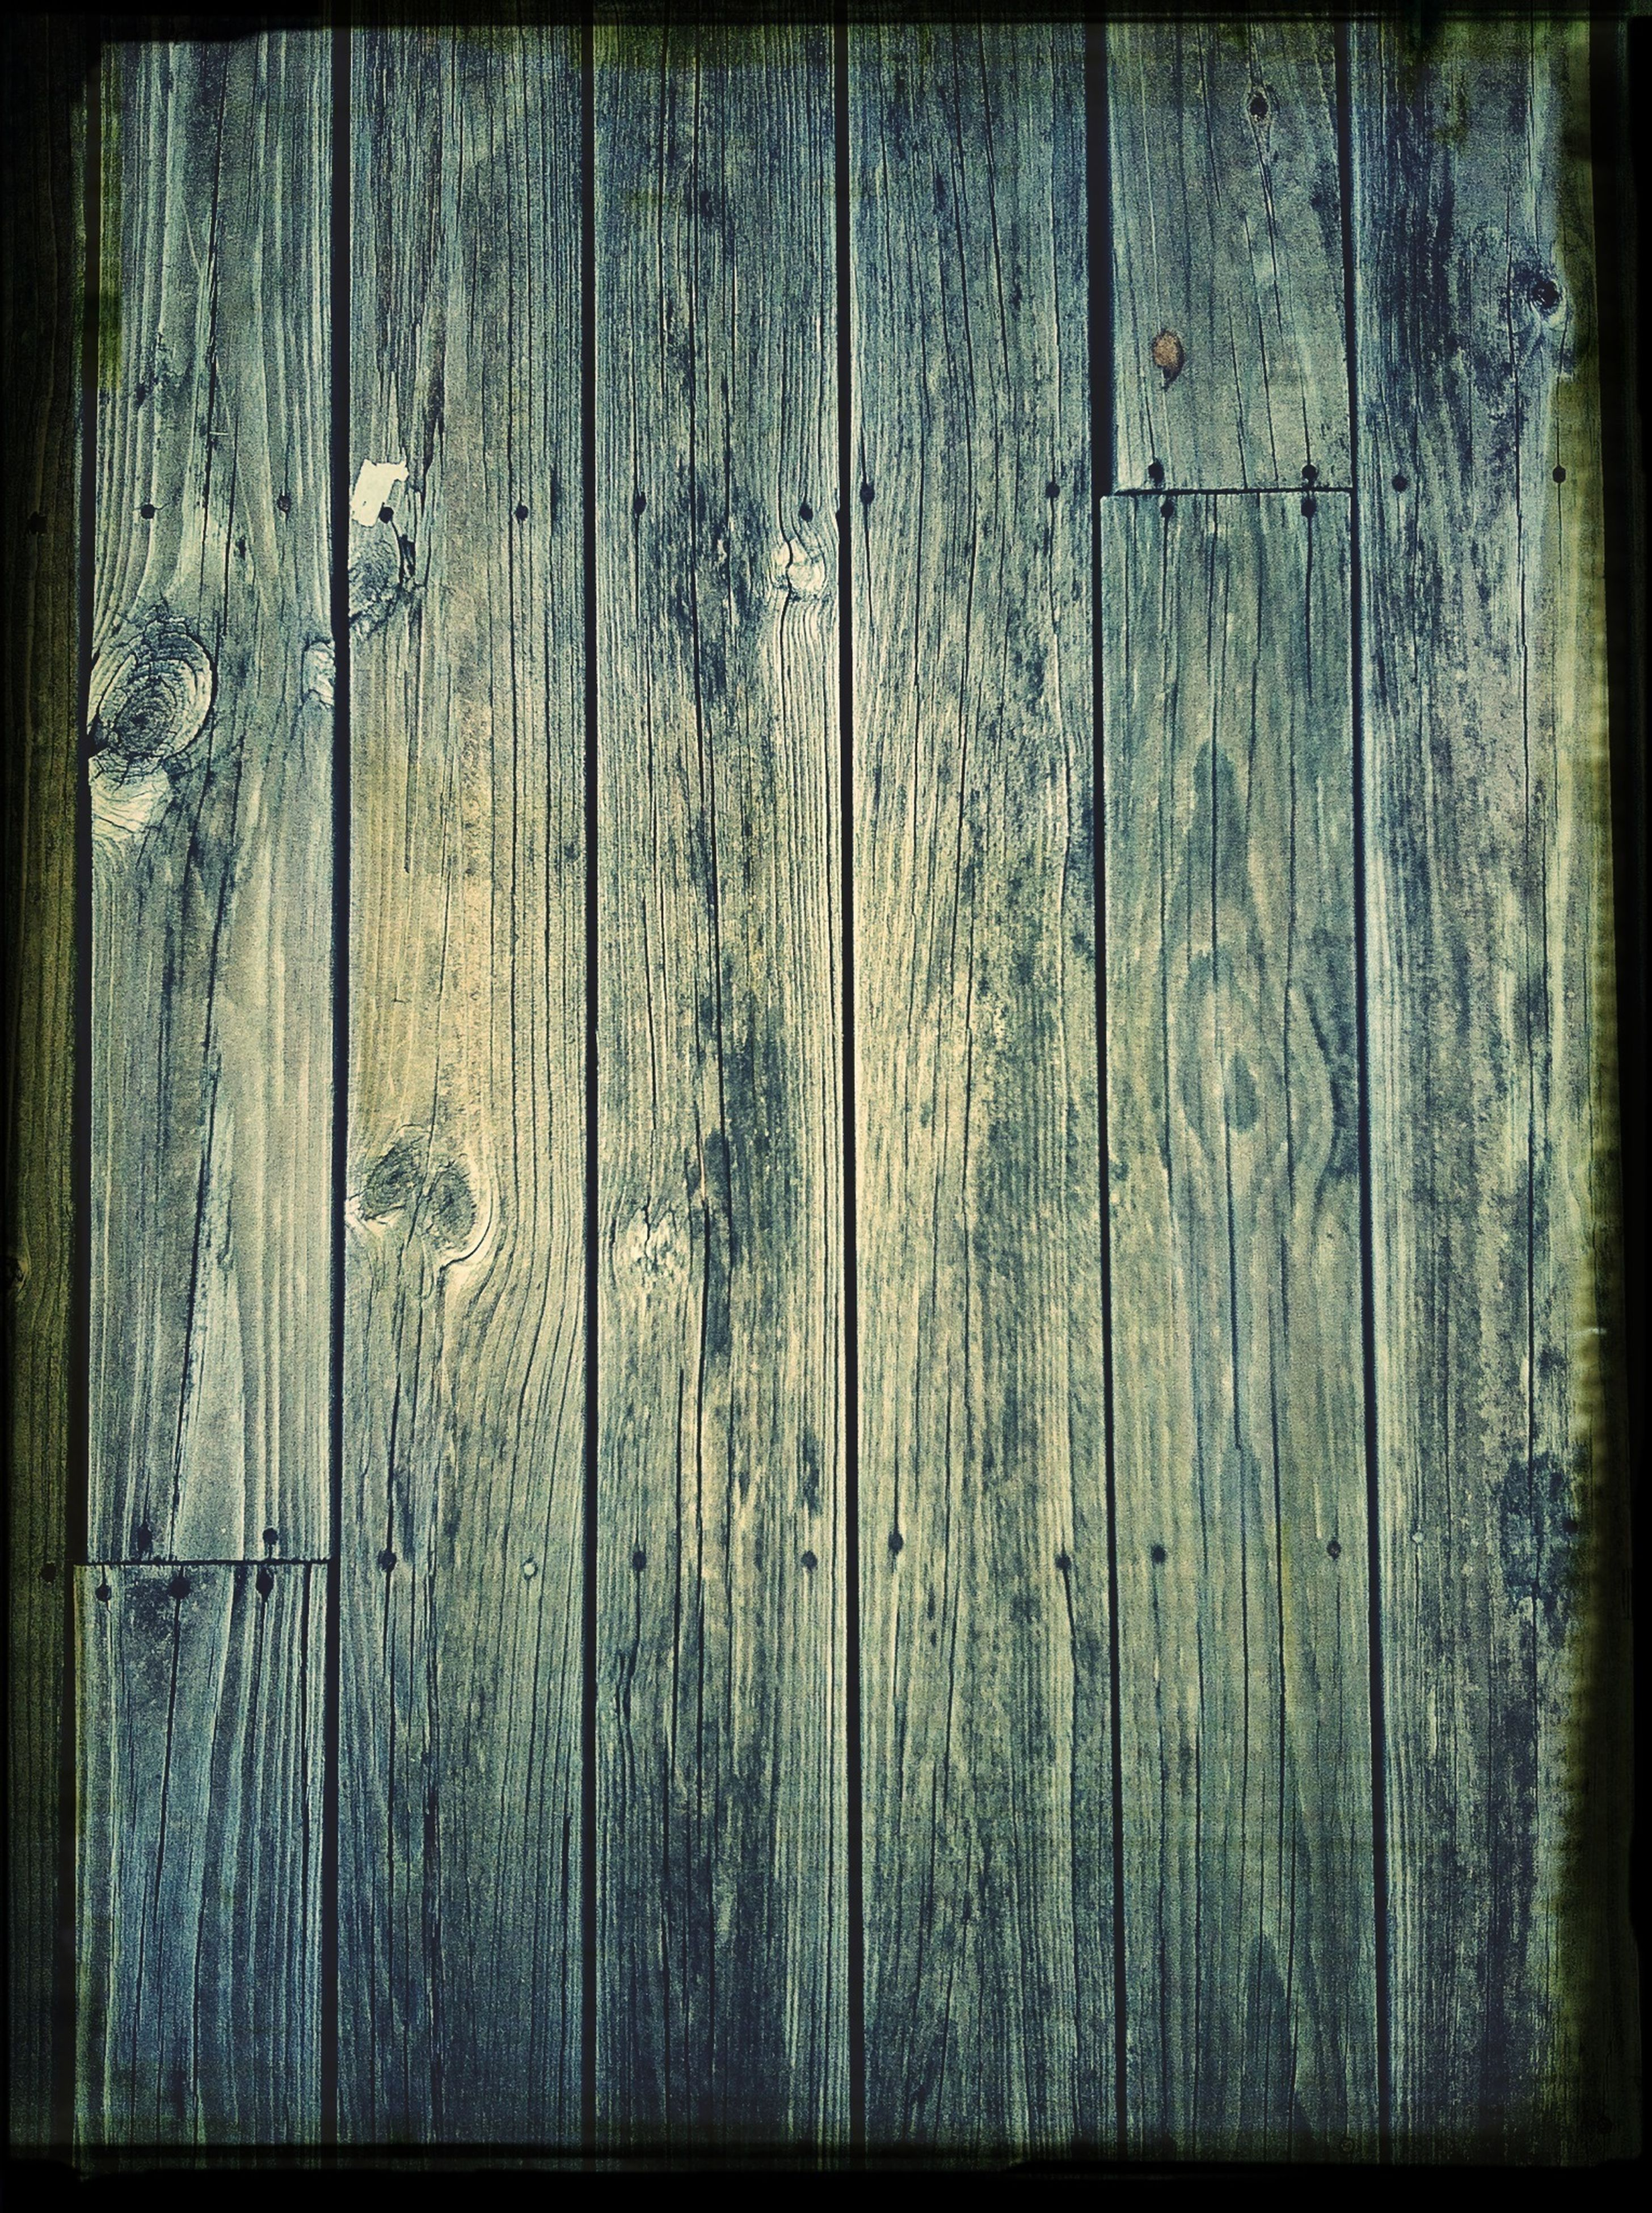 wood - material, wooden, full frame, wood, backgrounds, plank, textured, transfer print, door, close-up, pattern, auto post production filter, weathered, brown, old, no people, day, detail, outdoors, closed